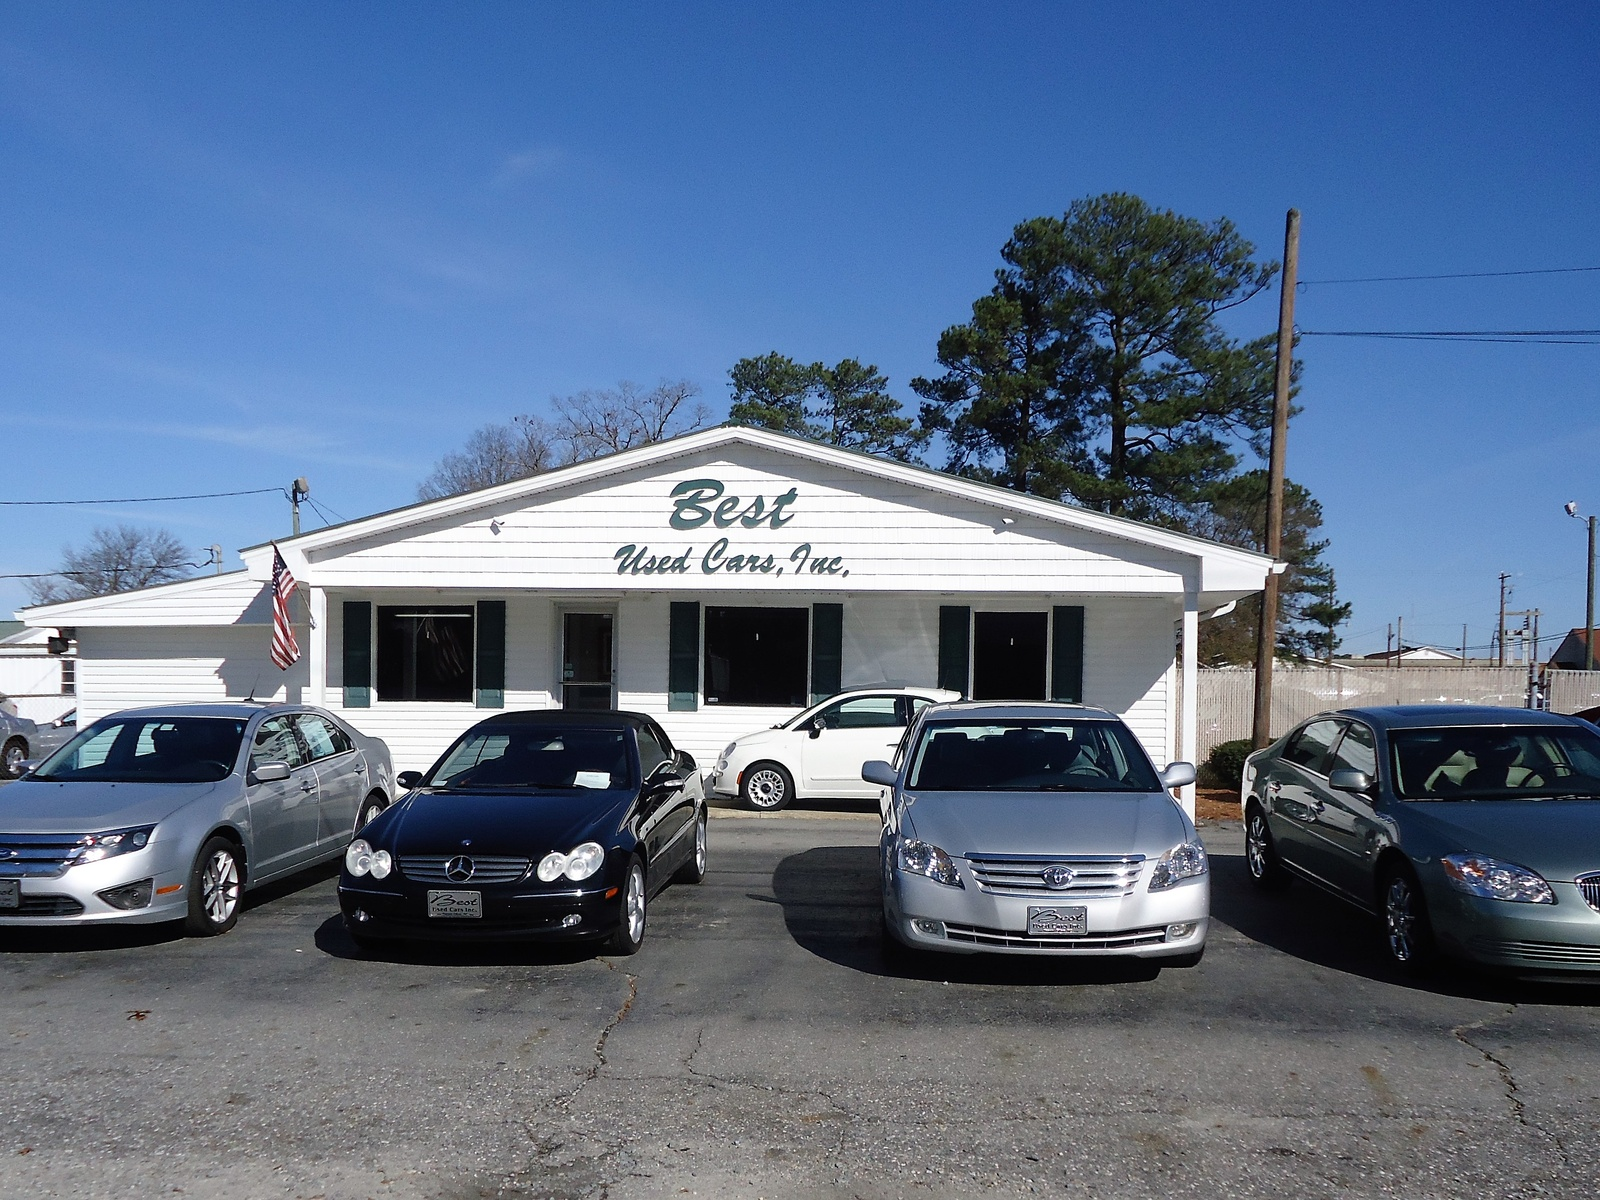 best used cars inc mount olive nc read consumer reviews browse used and new cars for sale